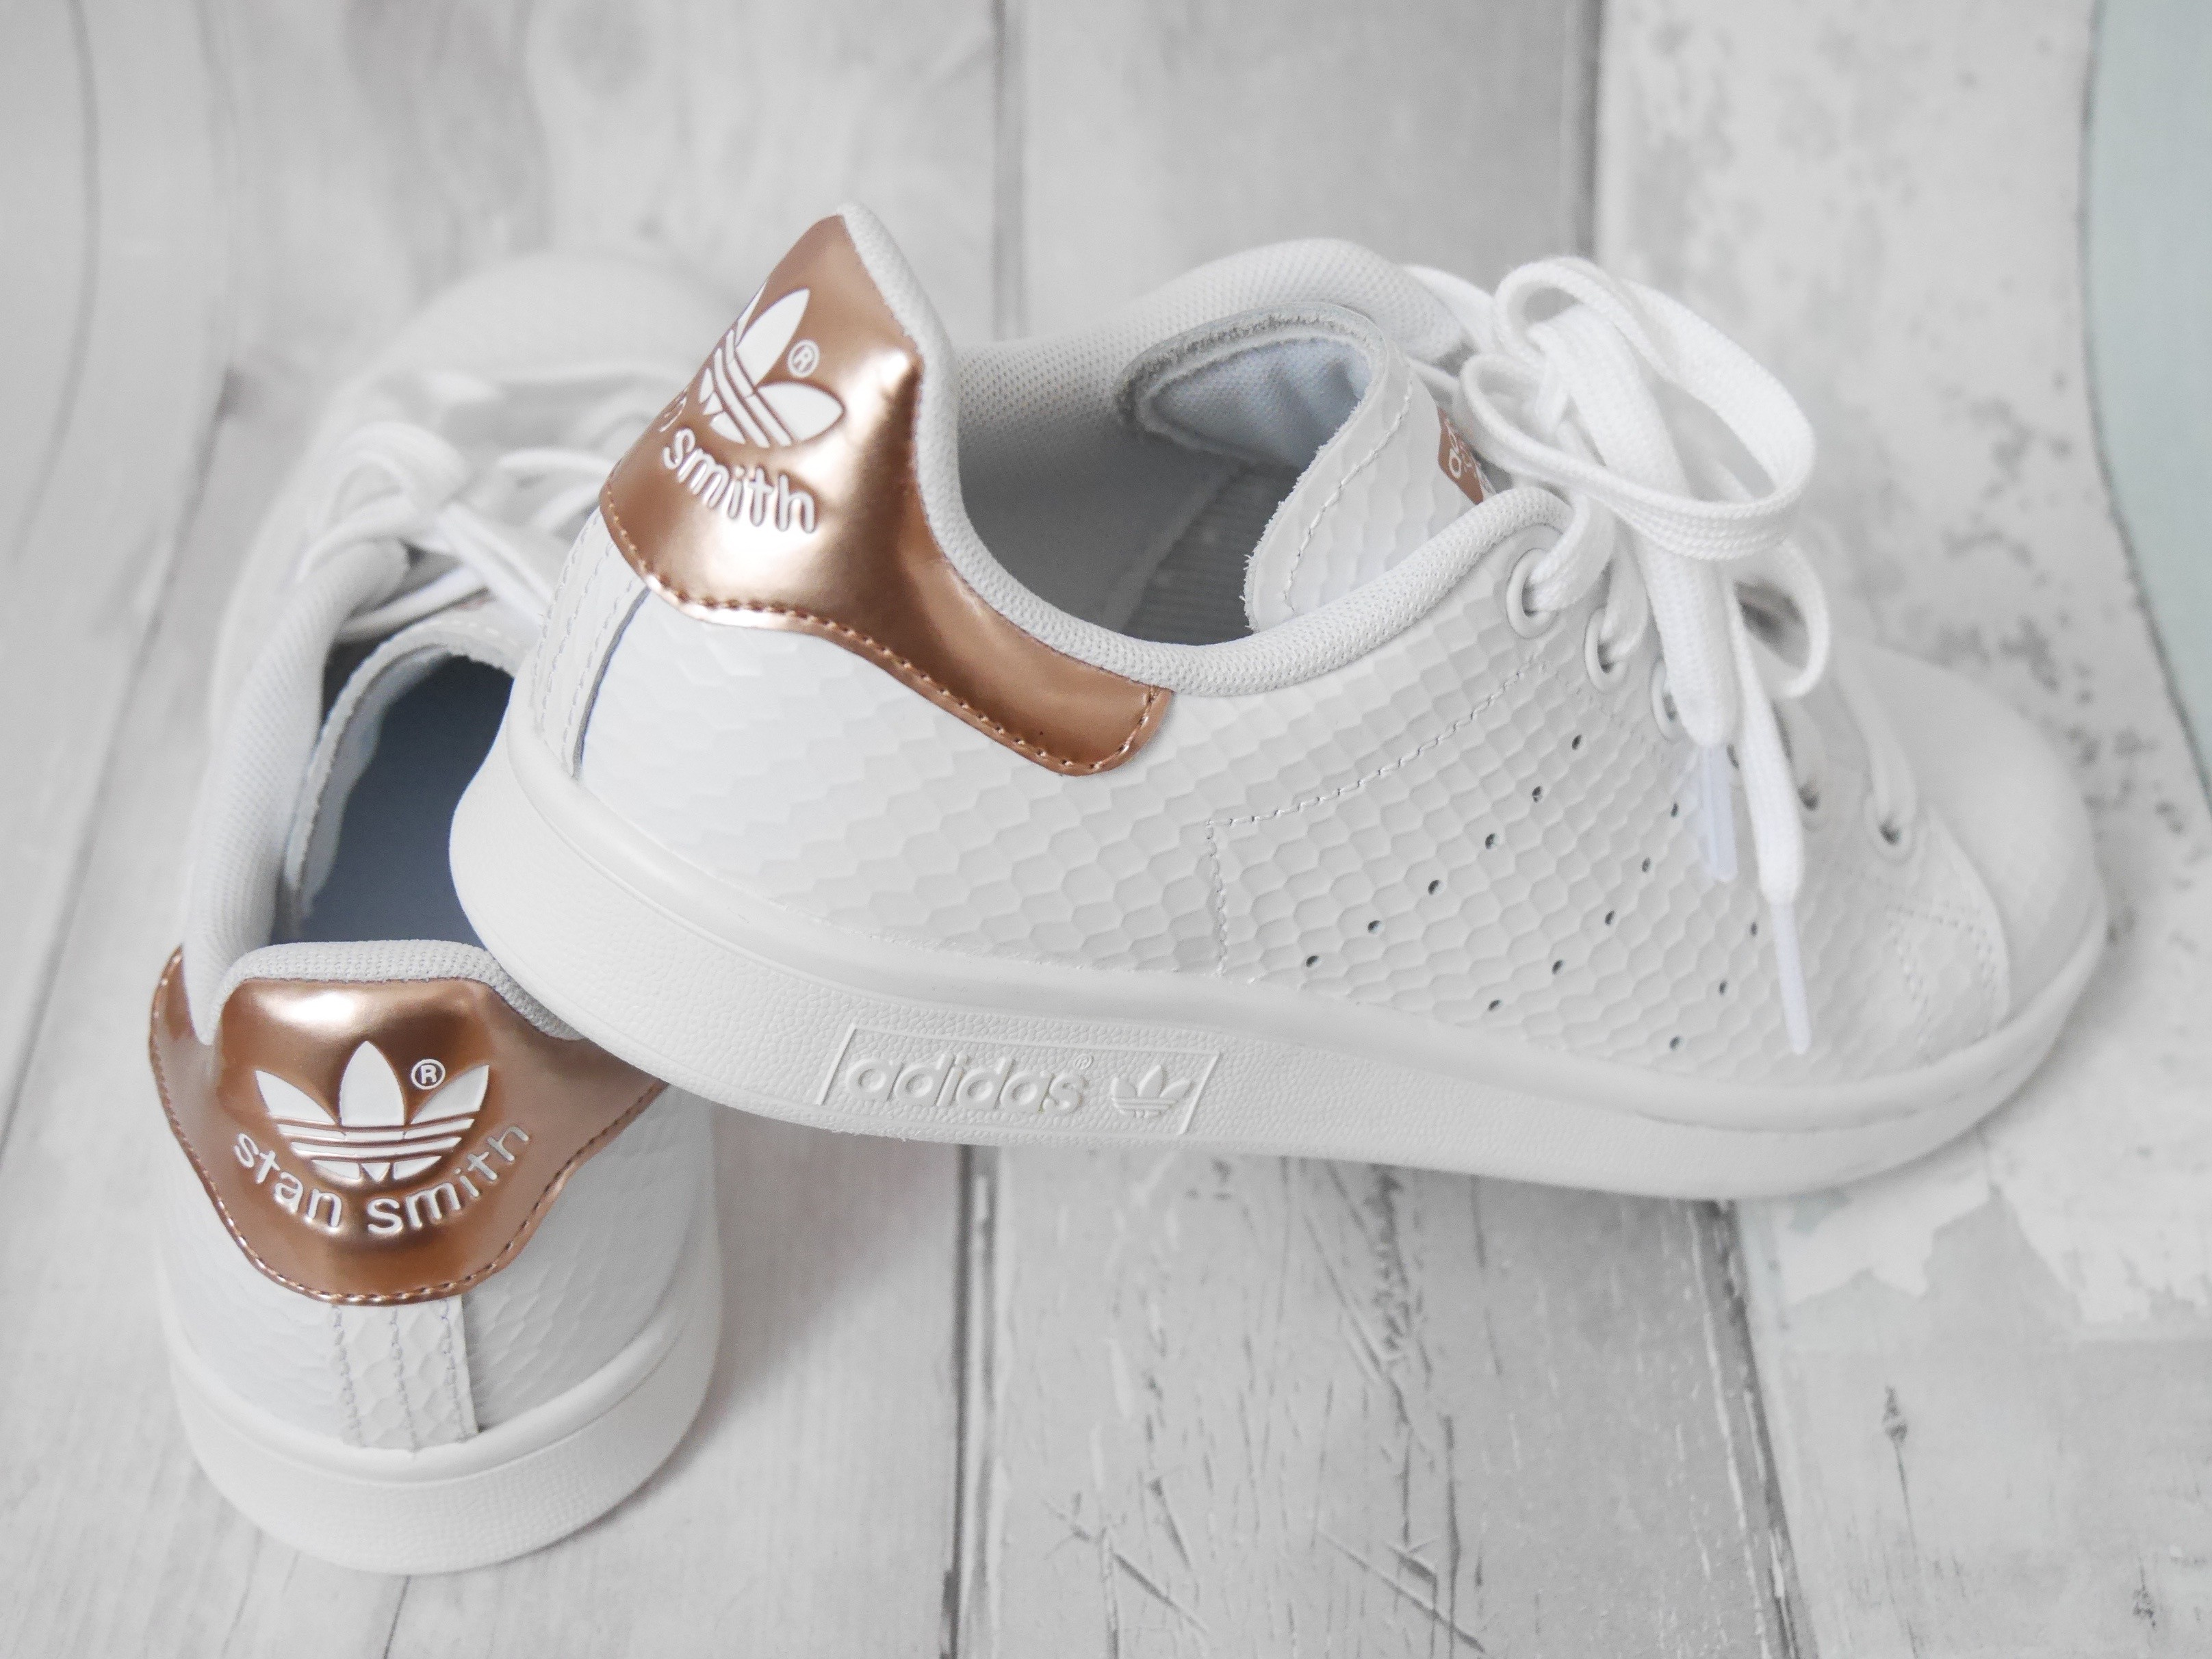 adidas stan smith femme gold cheap buy online